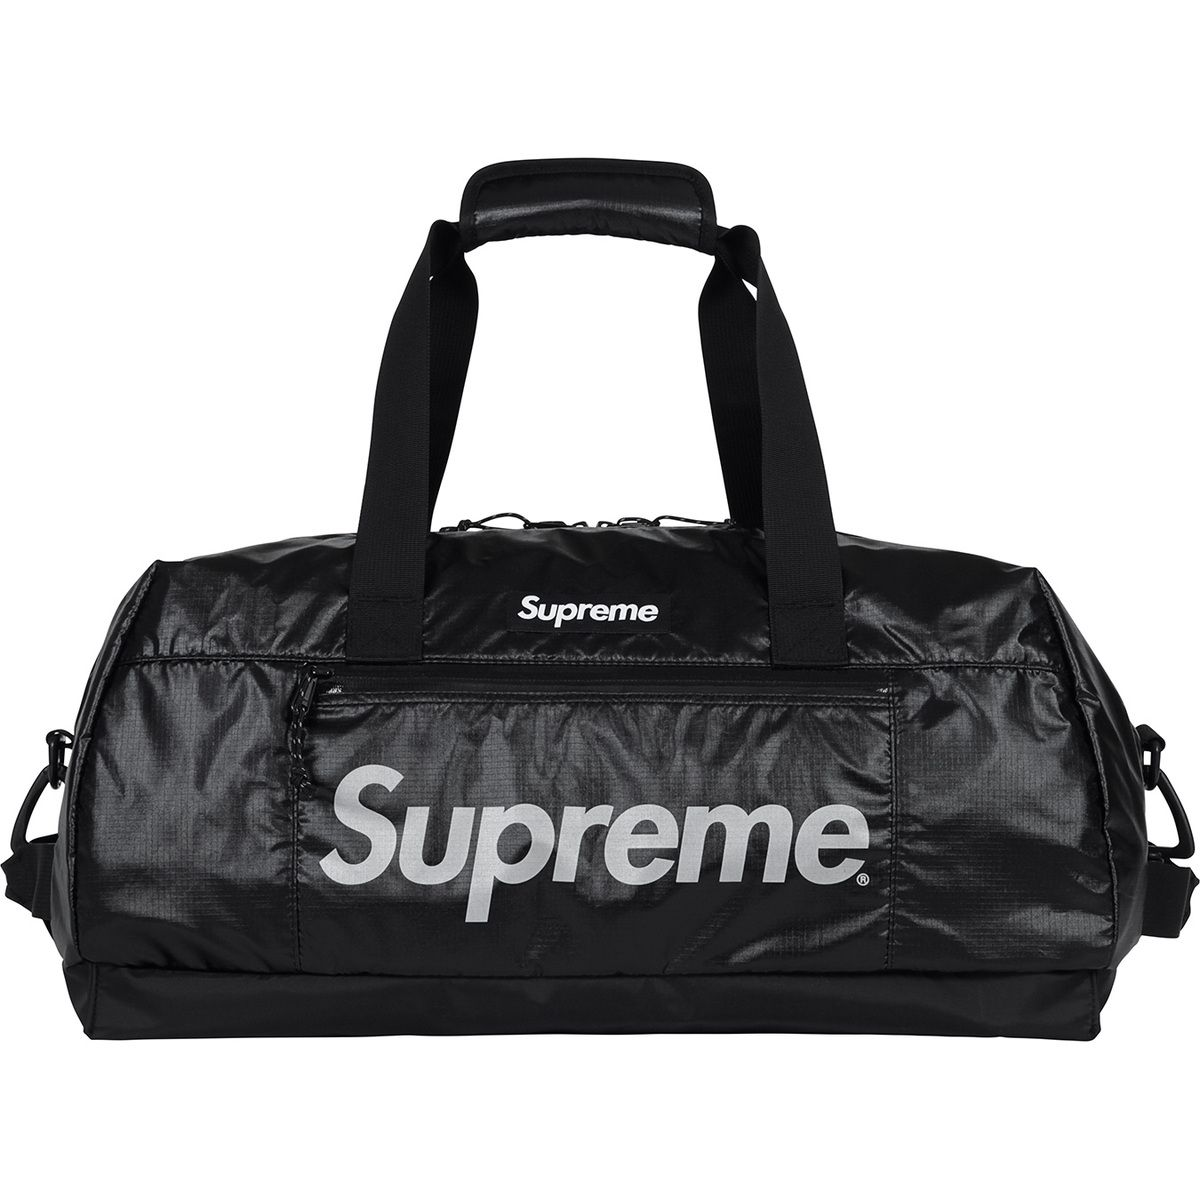 8ef2c574aadb Supreme - Duffle bag - Black nylon #hypebeast | Black is king ...